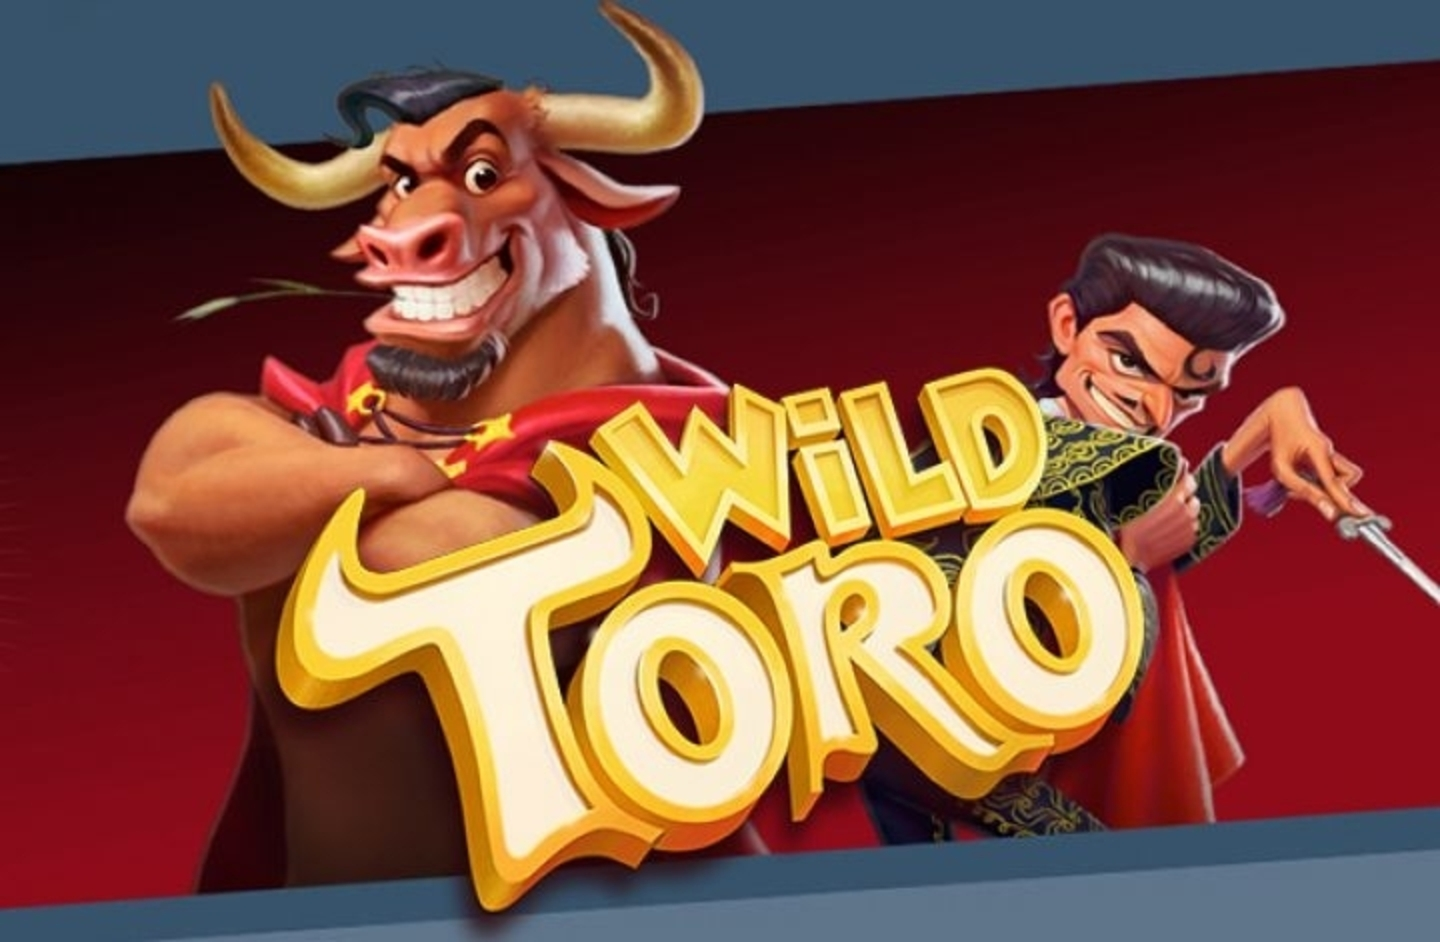 The Wild Toro Online Slot Demo Game by ELK Studios